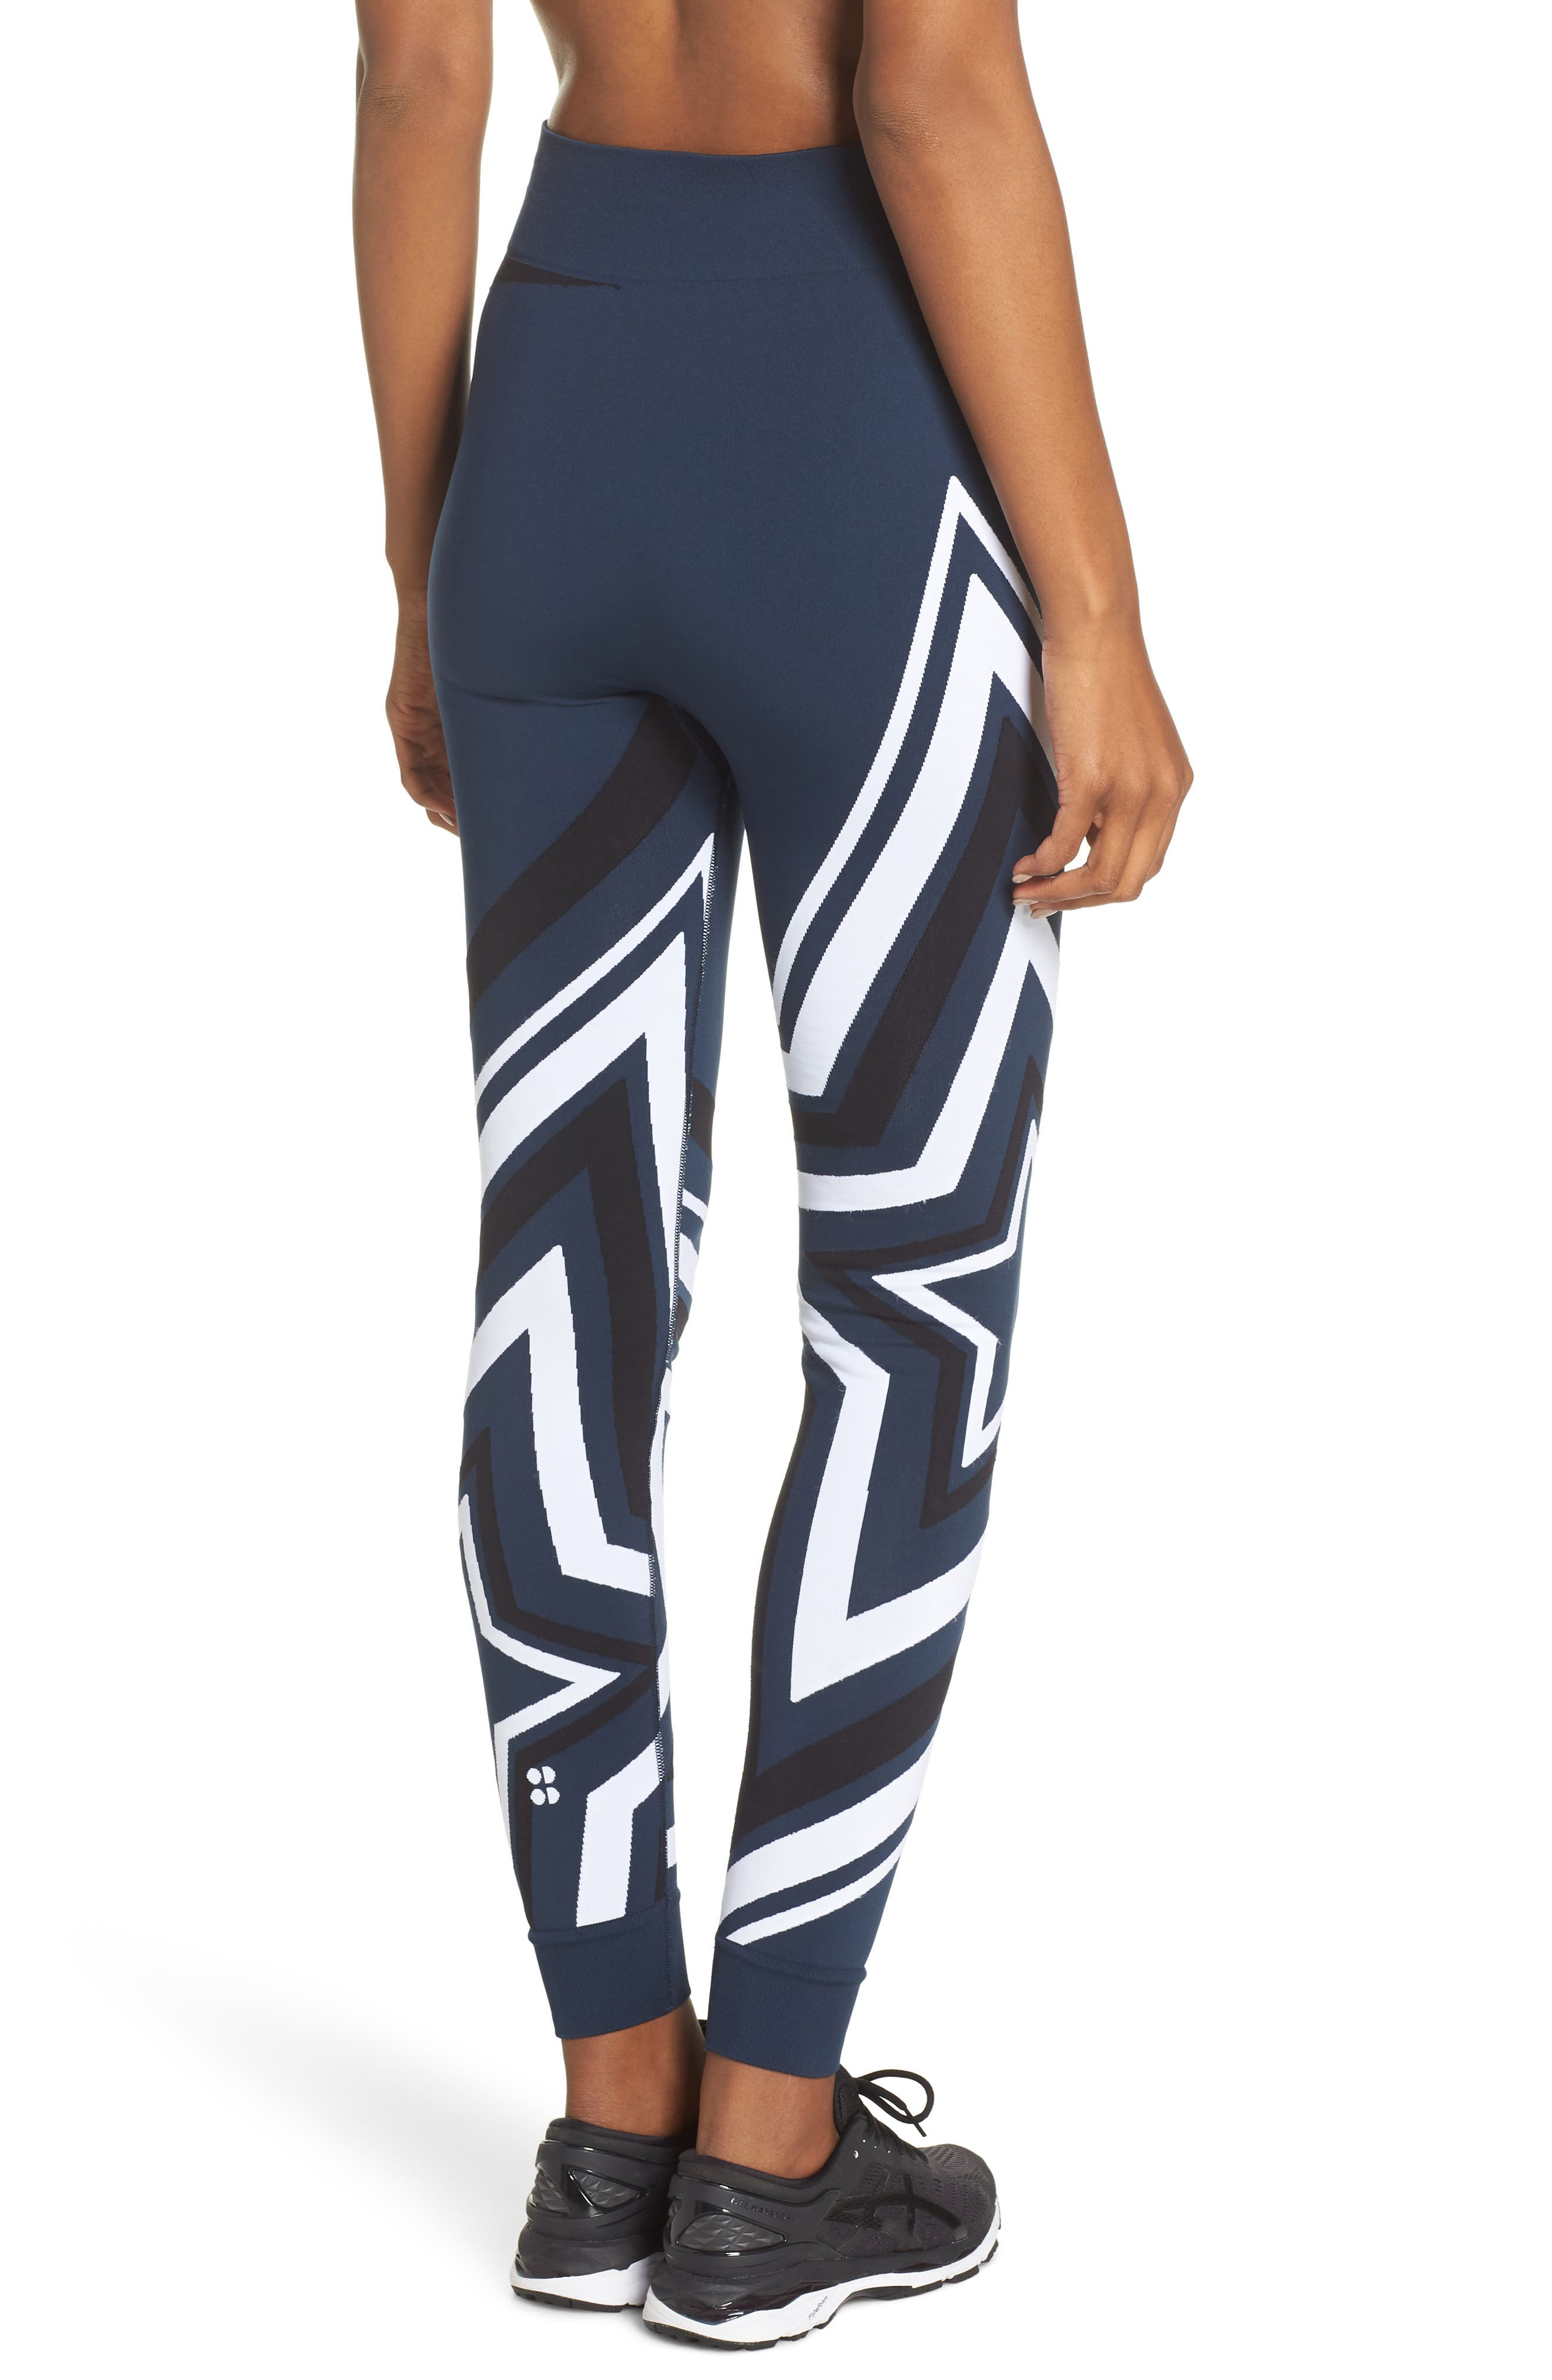 Star Graphic Seamless Leggings,                             Alternate thumbnail 2, color,                             BEETLE BLUE STAR JACQUARD